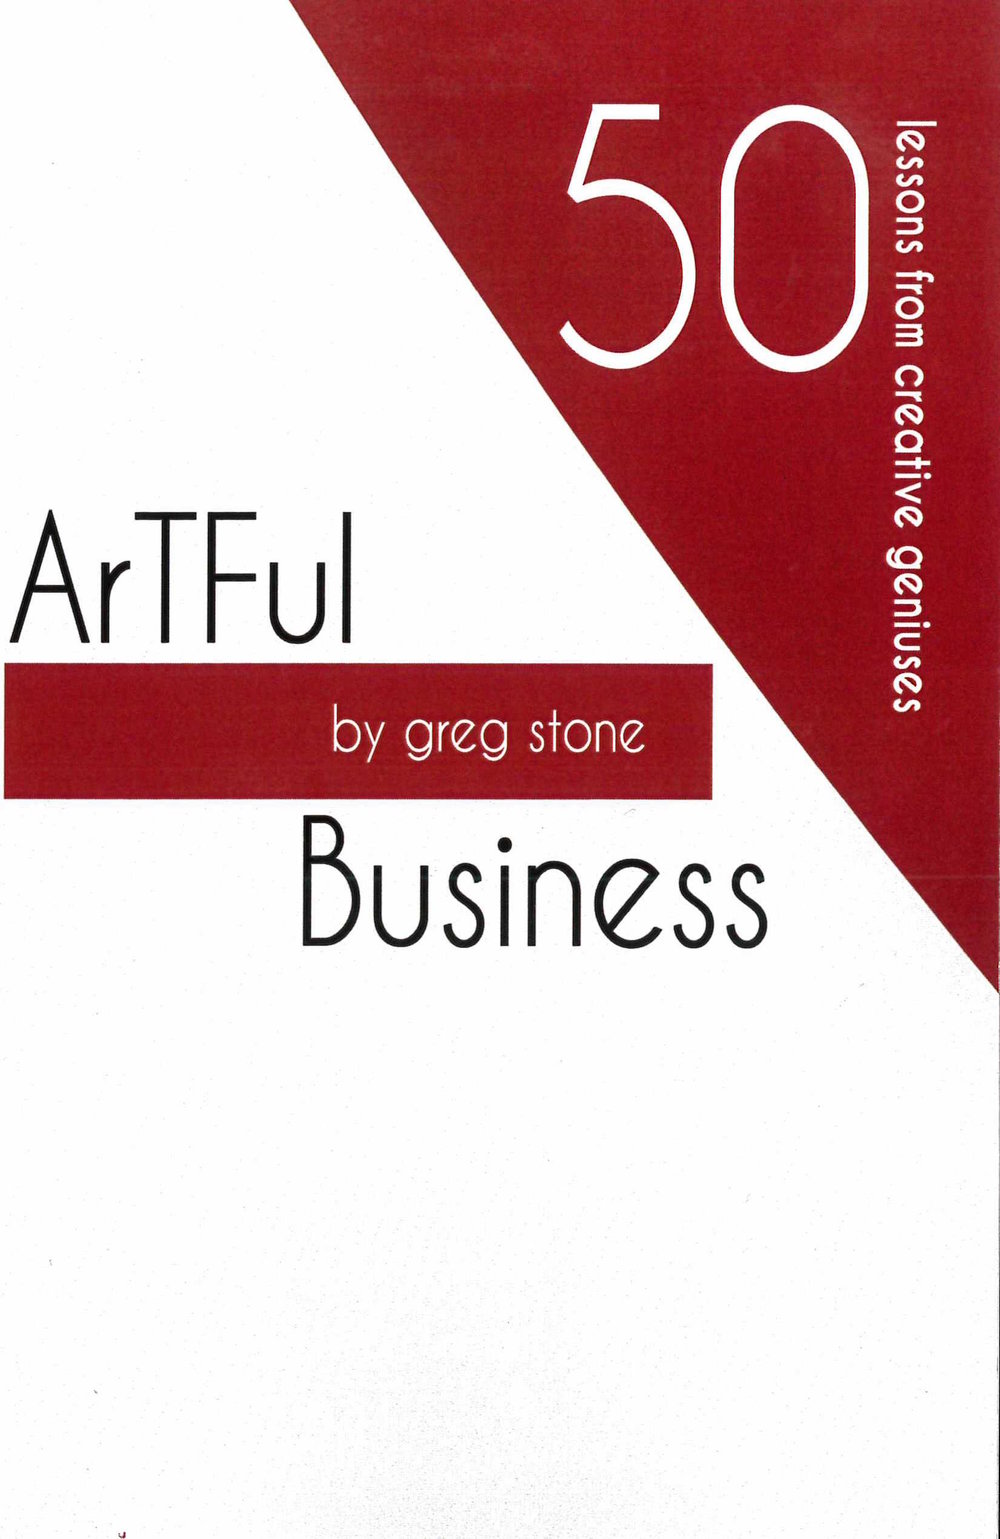 84c3f-artful-business_cover.jpg